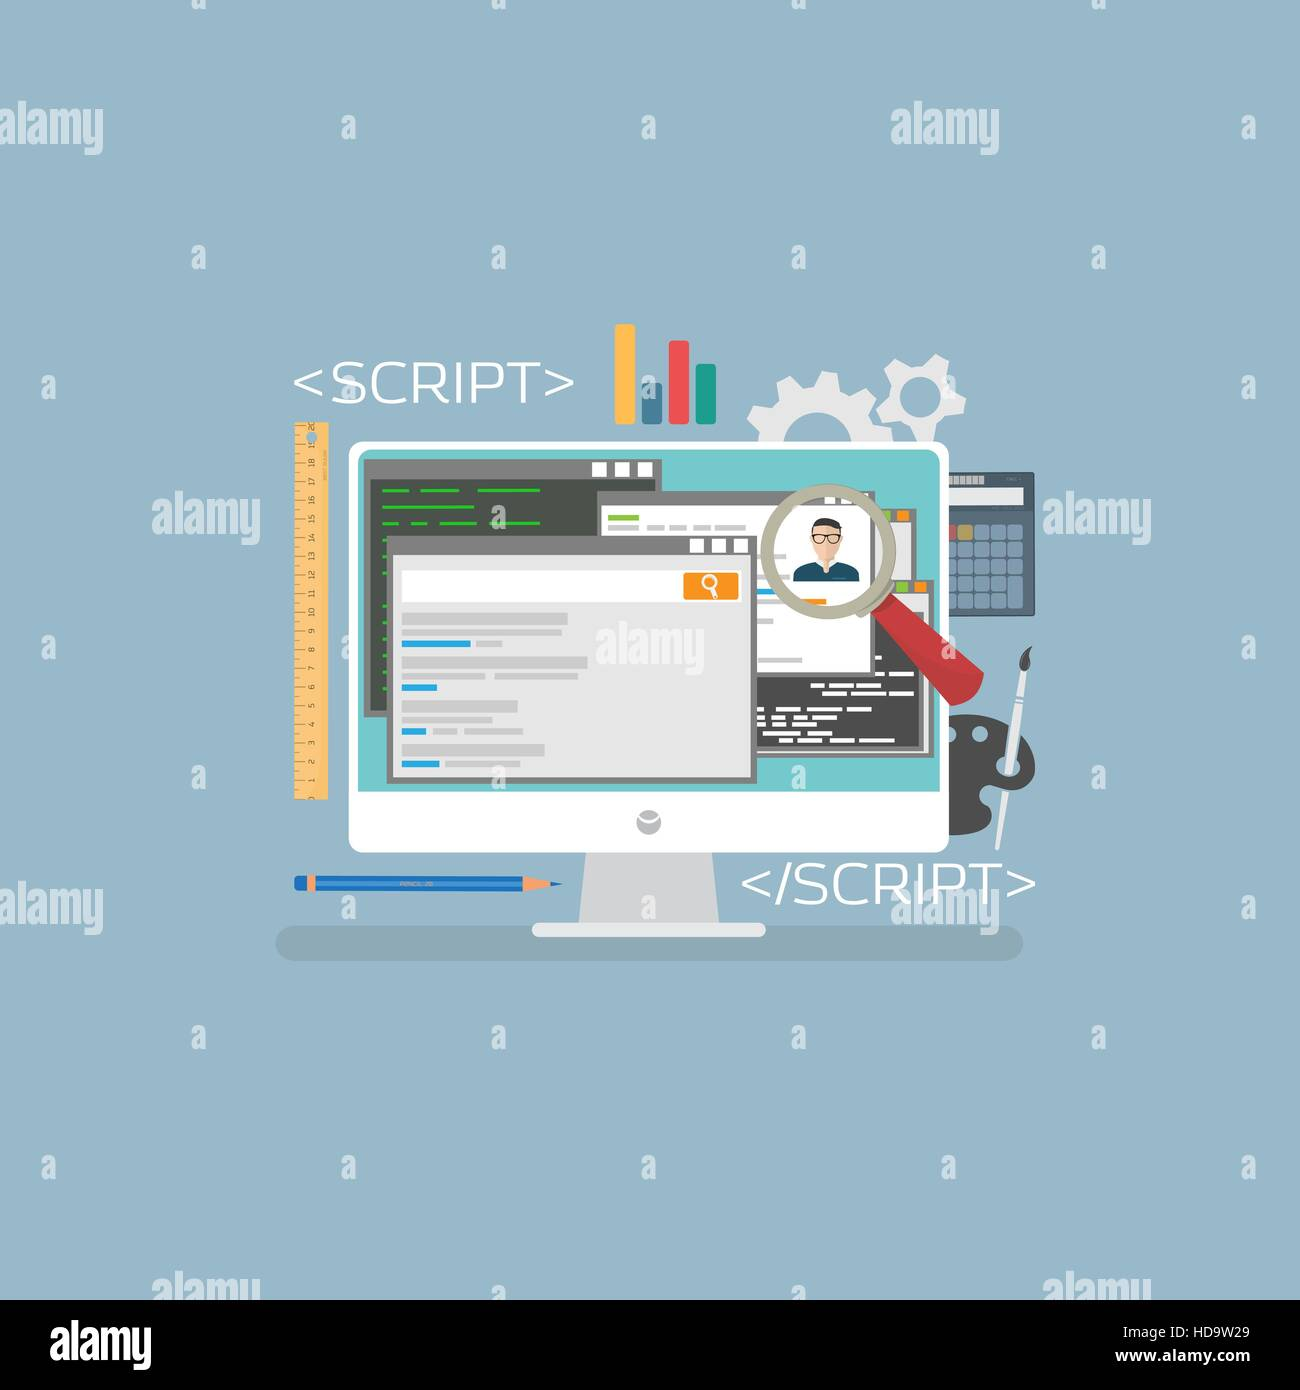 Flat web development concept. Web browser and window on monitor and programs for scripting and programming web applications - Stock Image